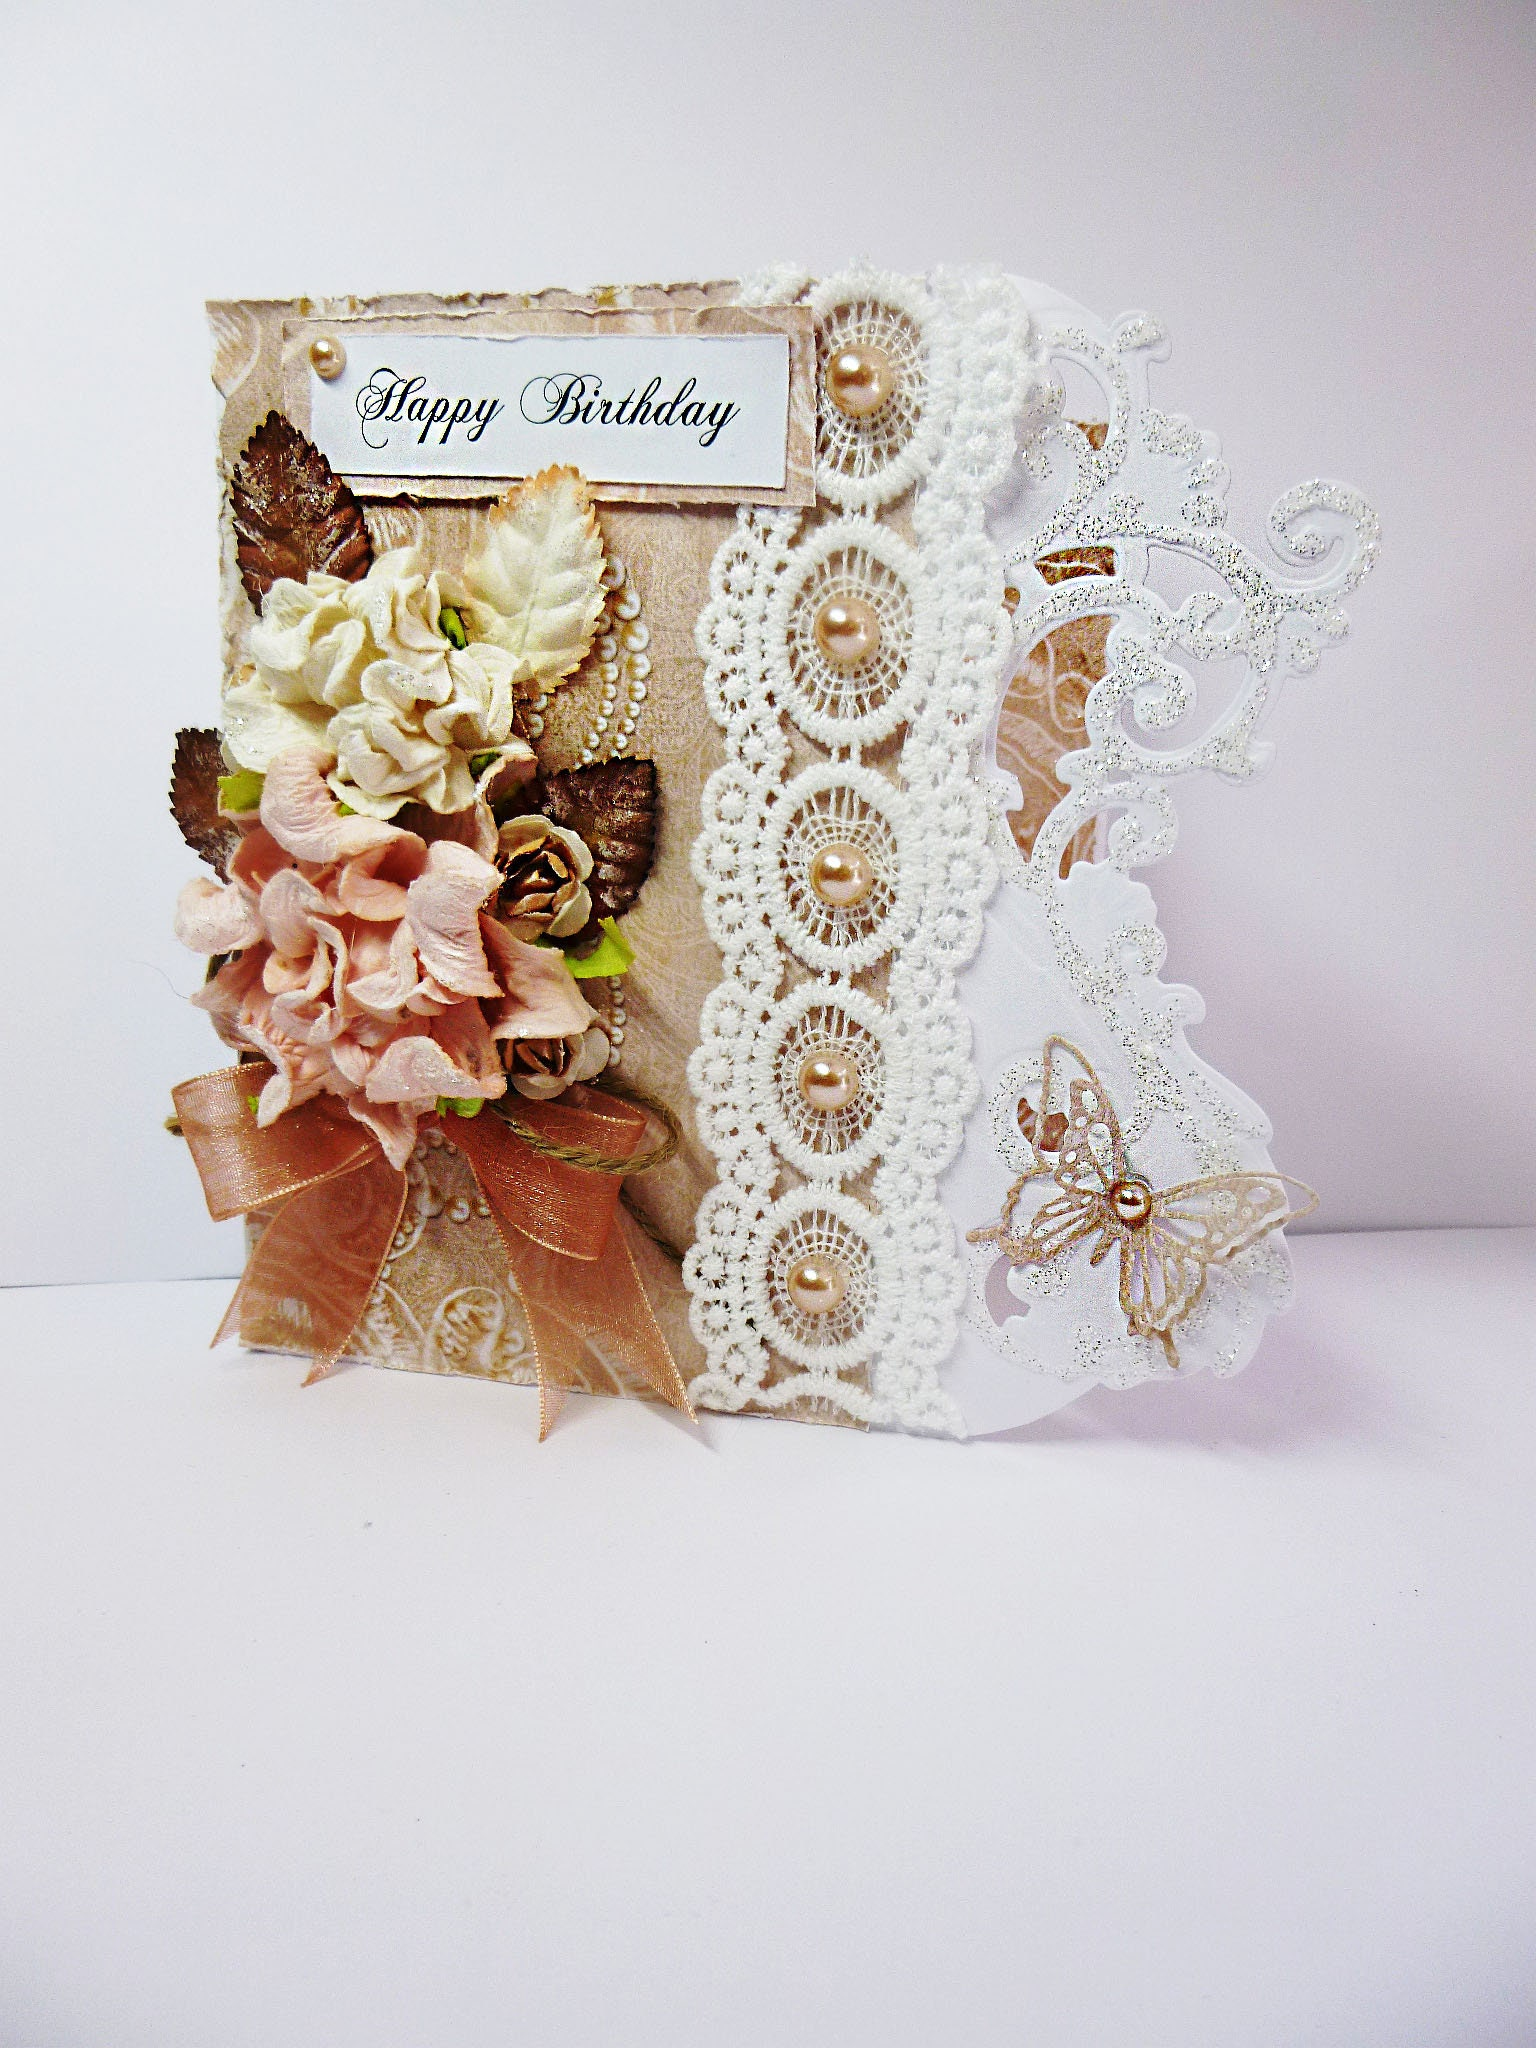 Shabby Chic Birthday Card Vintage Flowers And Lace Female For Mum Sister